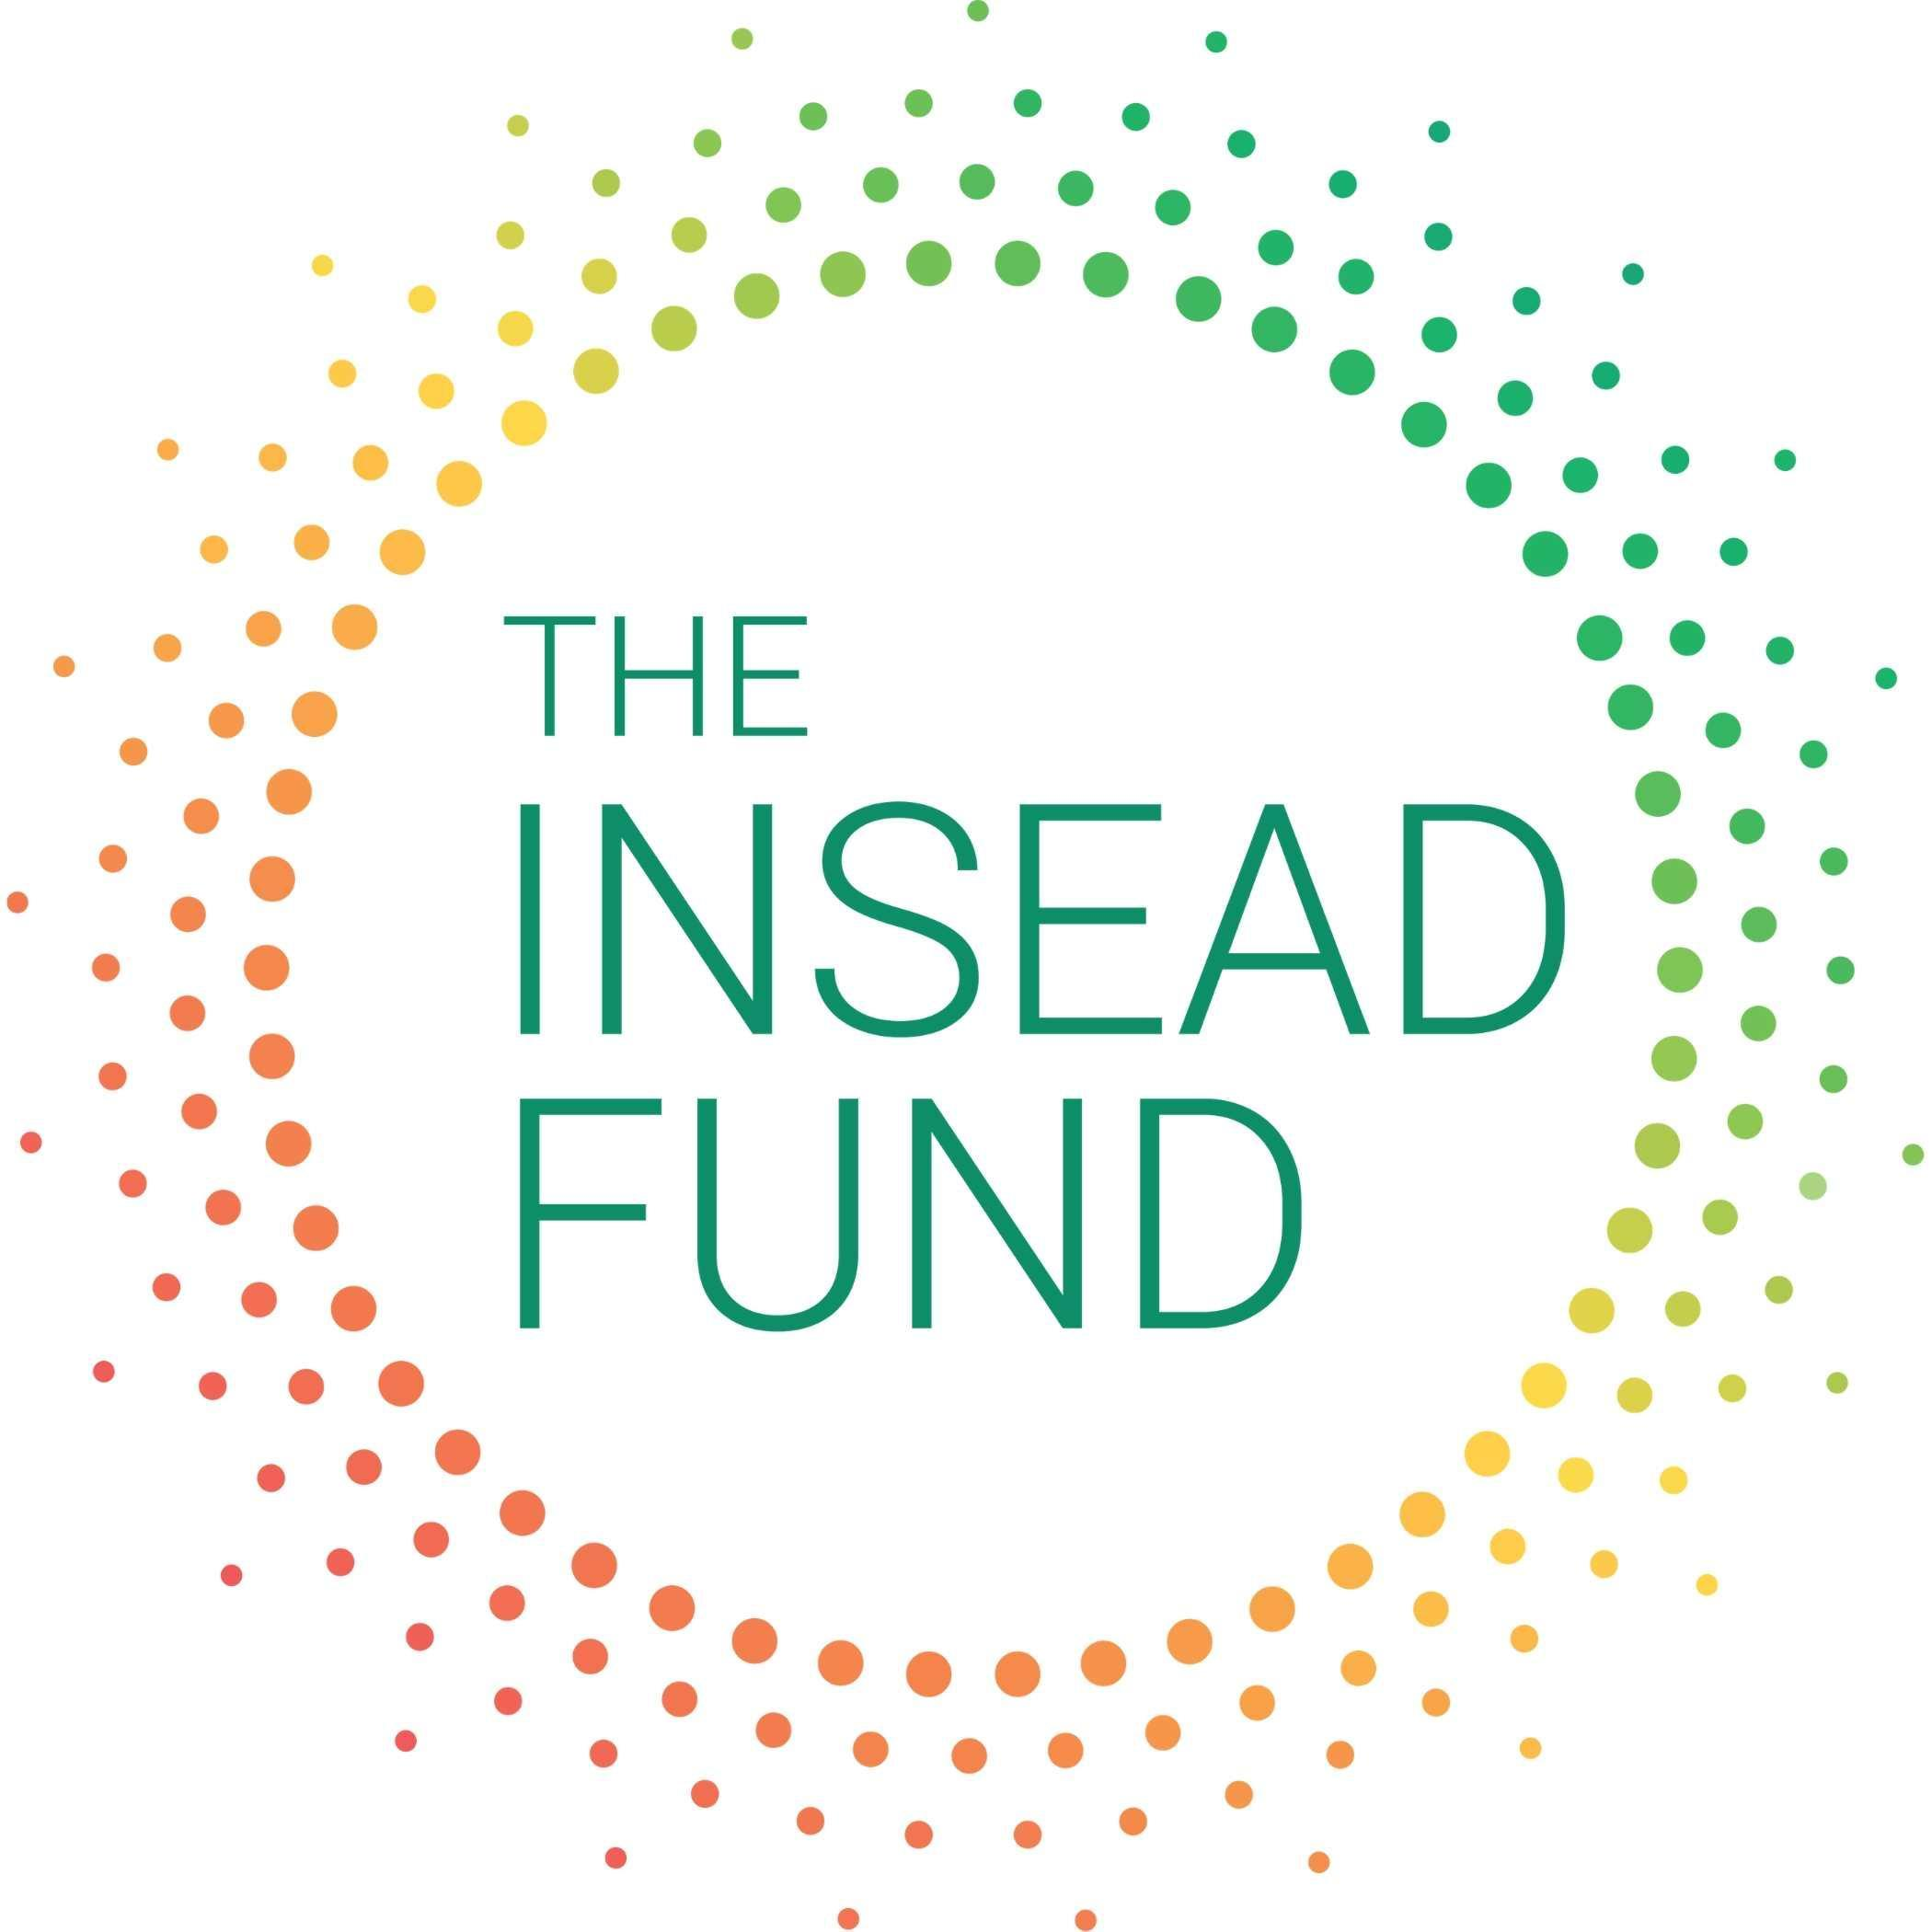 The INSEAD Fund